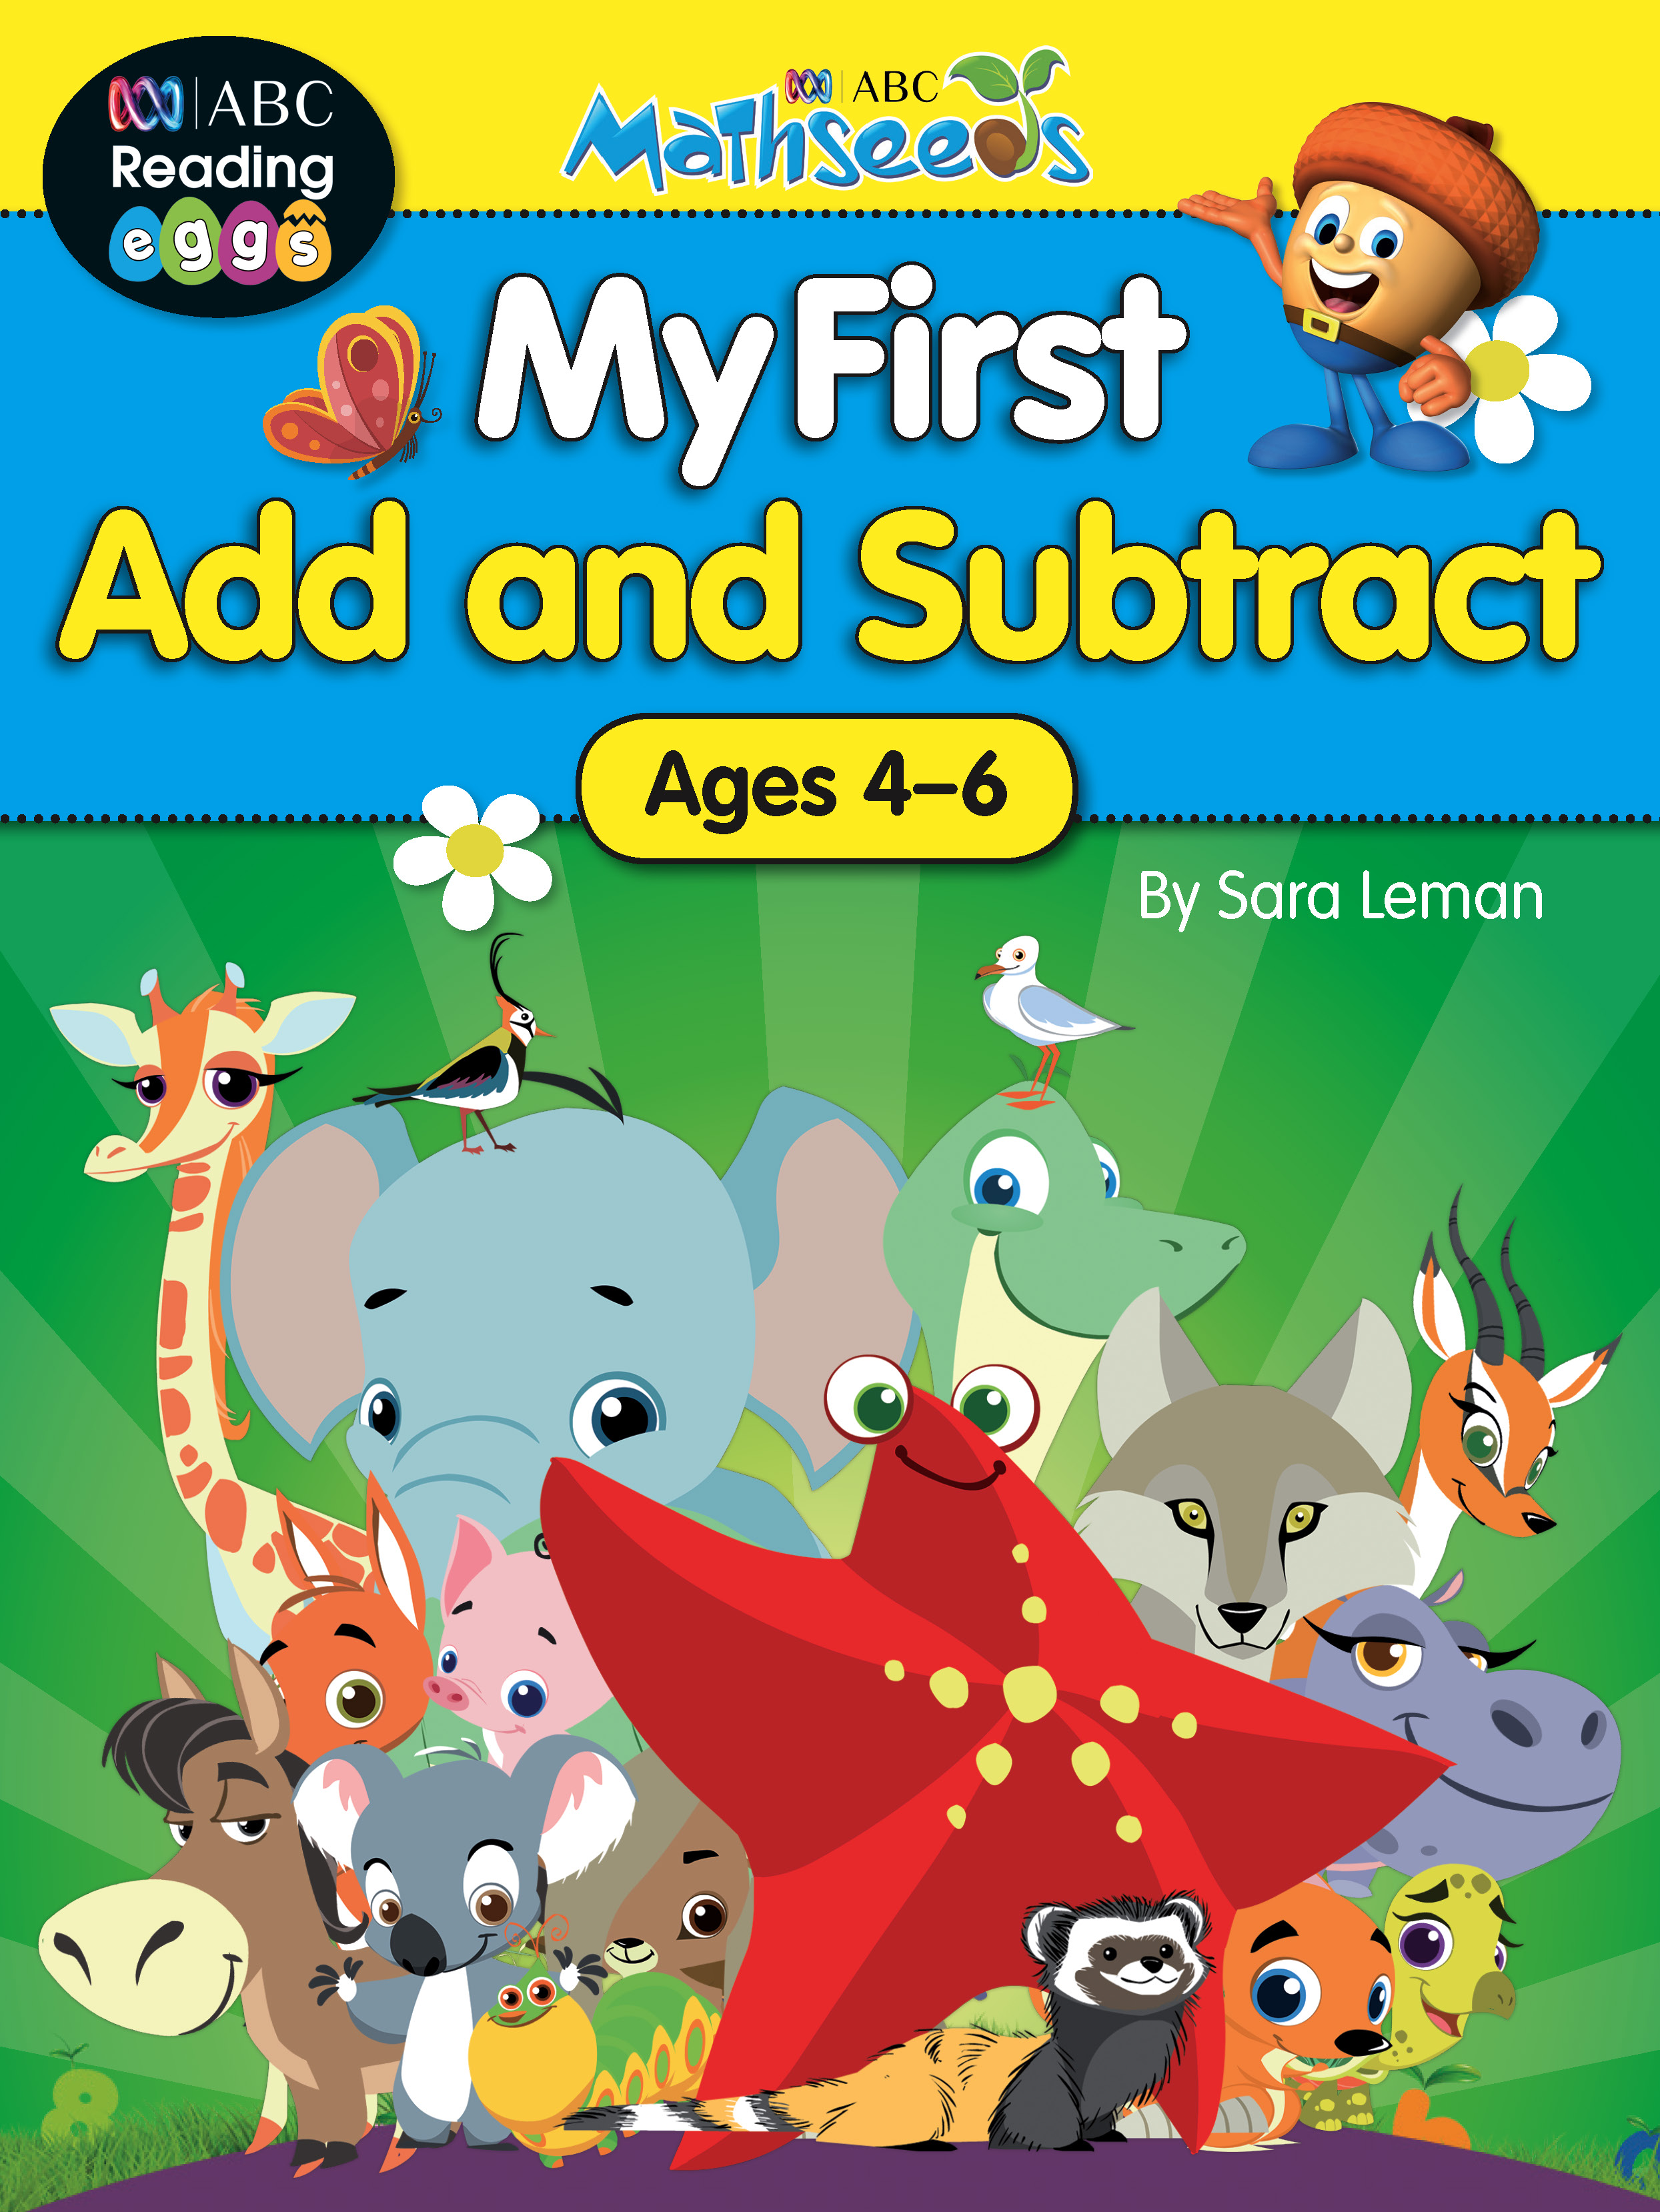 ABC Mathseeds My First Addition and Subtraction Activity Book